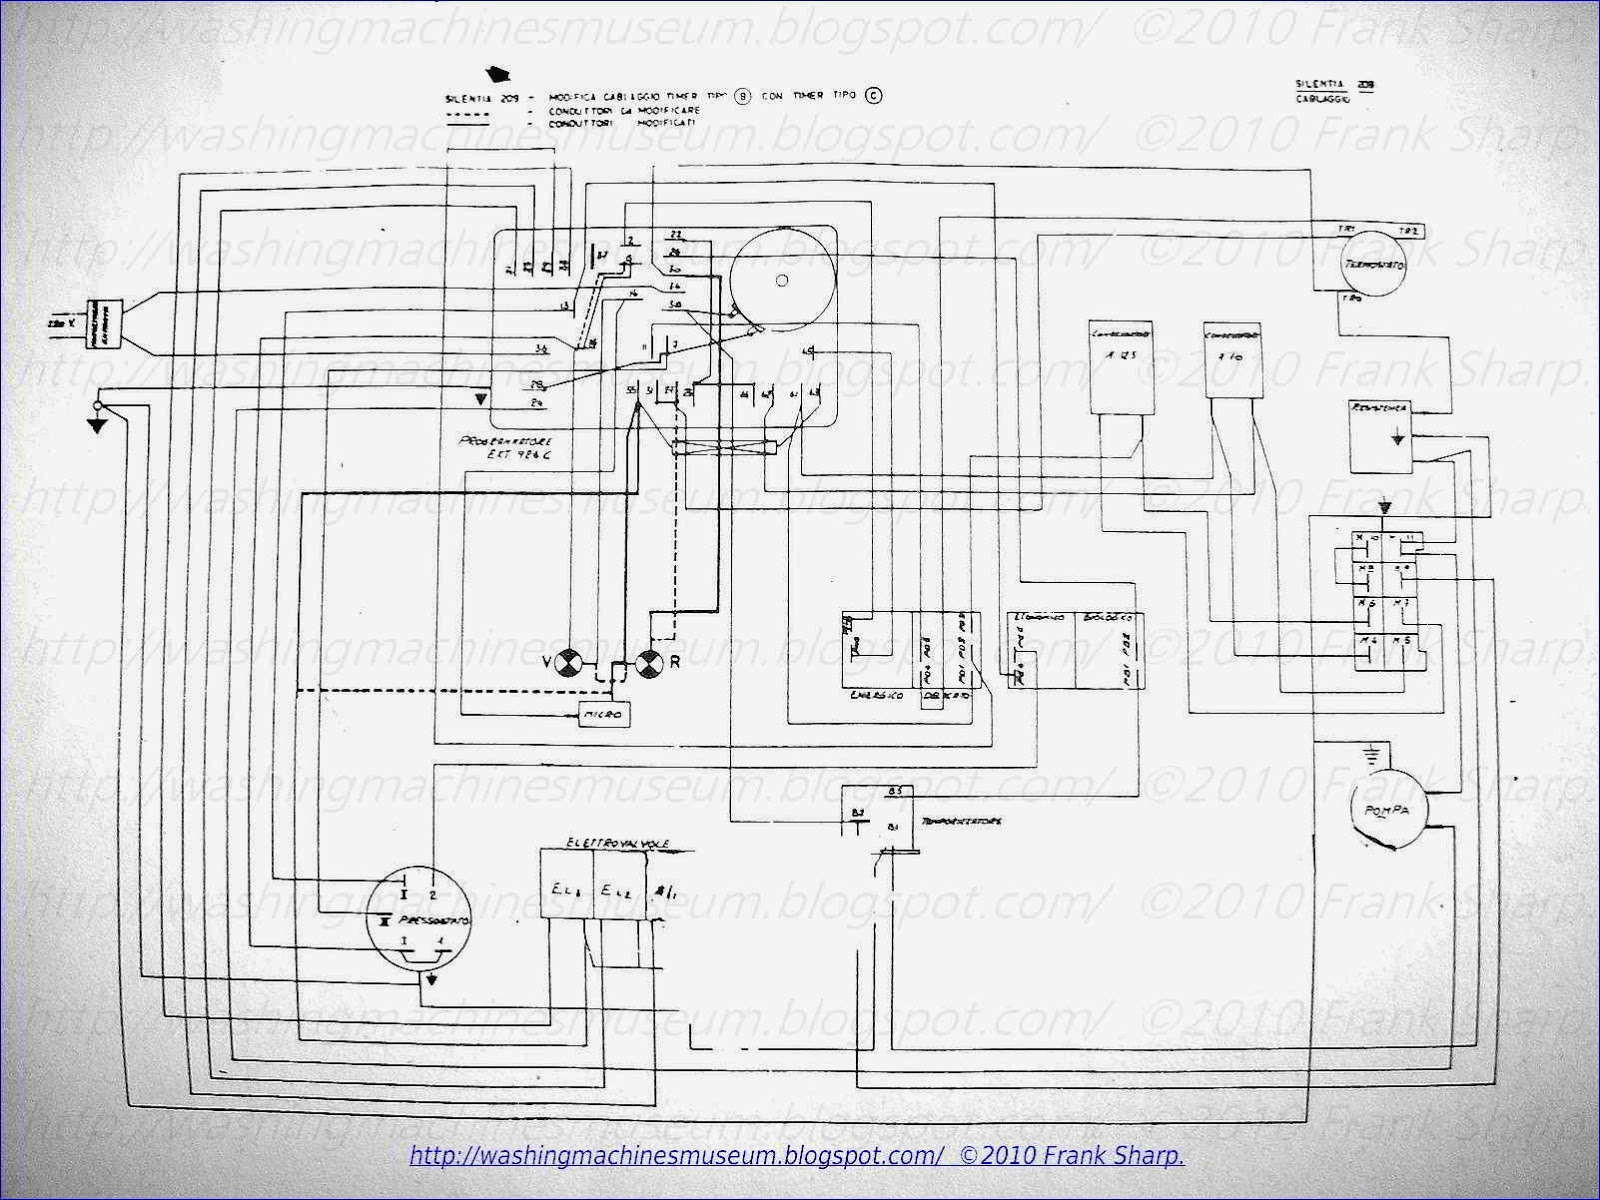 Ariston Washing Machine Wiring Diagram Simple Guide About And Schematics Washer Rama Museum Silentia 209 Timer Mtc Sl21 Schematic Rh Washingmachinesmuseum Blogspot Com Hotpoint Circuit